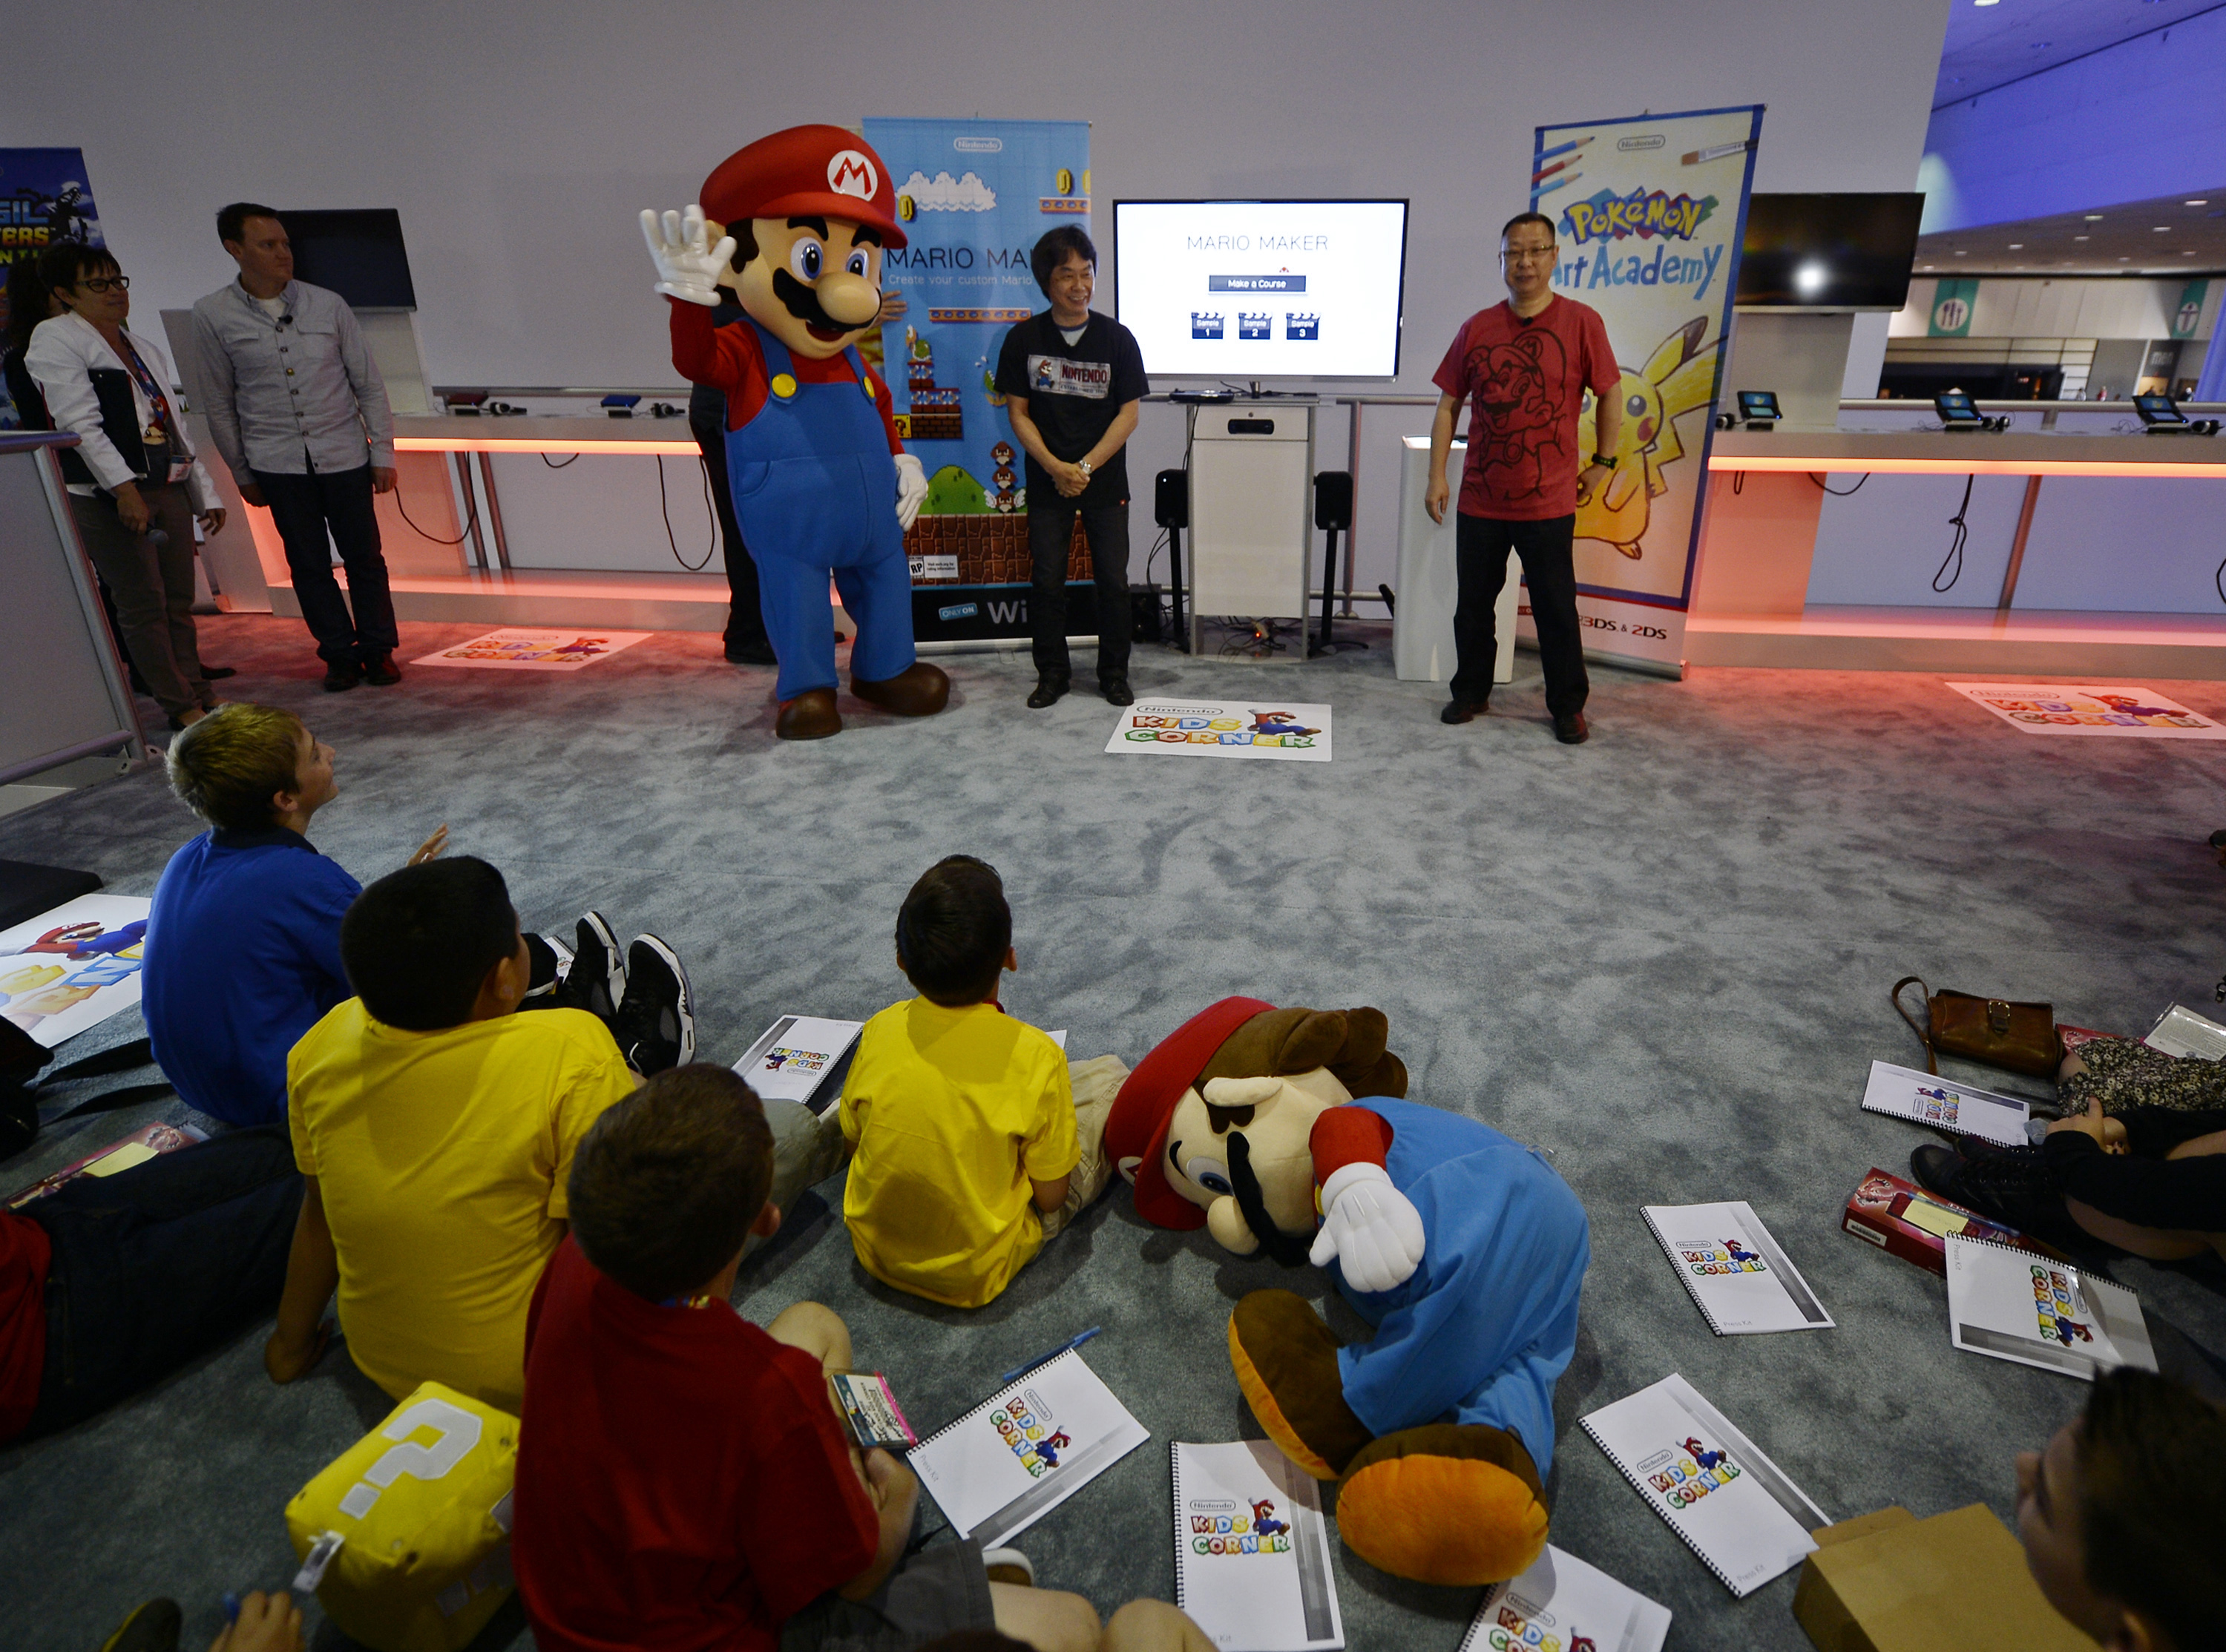 "Shigeru Miyamoto (C), Nintendo's senior managing director and general manager of its Entertainment Analysis and Development division, and Takashi Tezuka (R), executive officer of Nintendo's Entertainment Analysis and Development division, together with Nintendo's character Mario (L), introduce a new game ""Mario Maker"" while a small group of children look on during a news conference at the 2014 Electronic Entertainment Expo, known as E3, in Los Angeles, California June 11, 2014.  REUTERS/Kevork Djansezian  (UNITED STATES - Tags: SCIENCE TECHNOLOGY SOCIETY BUSINESS TPX IMAGES OF THE DAY)"